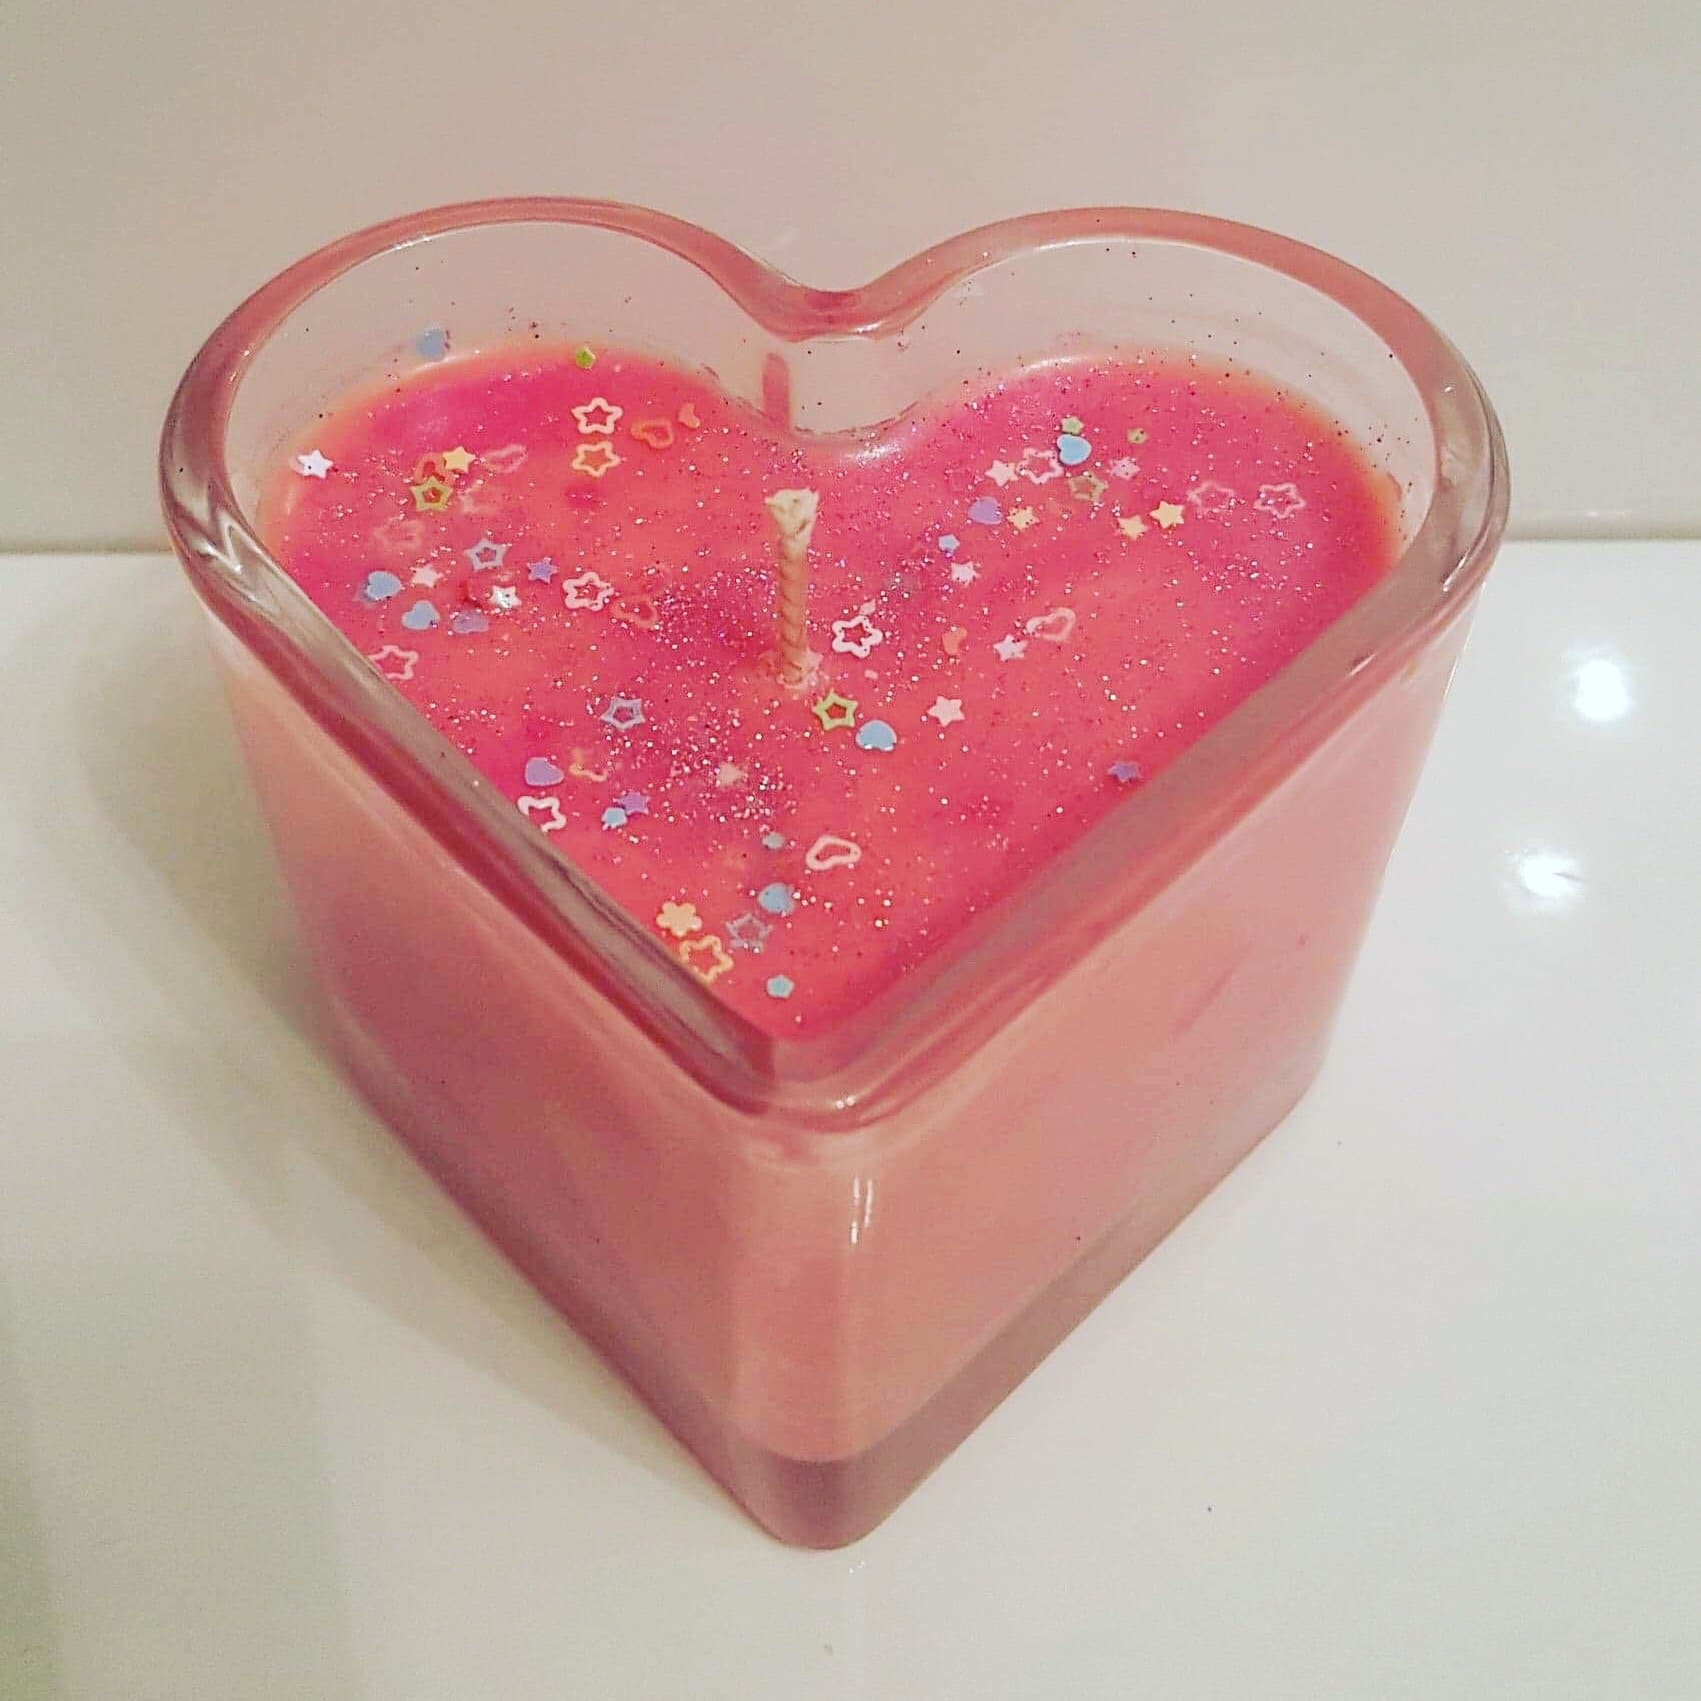 Love spell heart candles with a hint of glitter and sequins - Pugglewick Candles